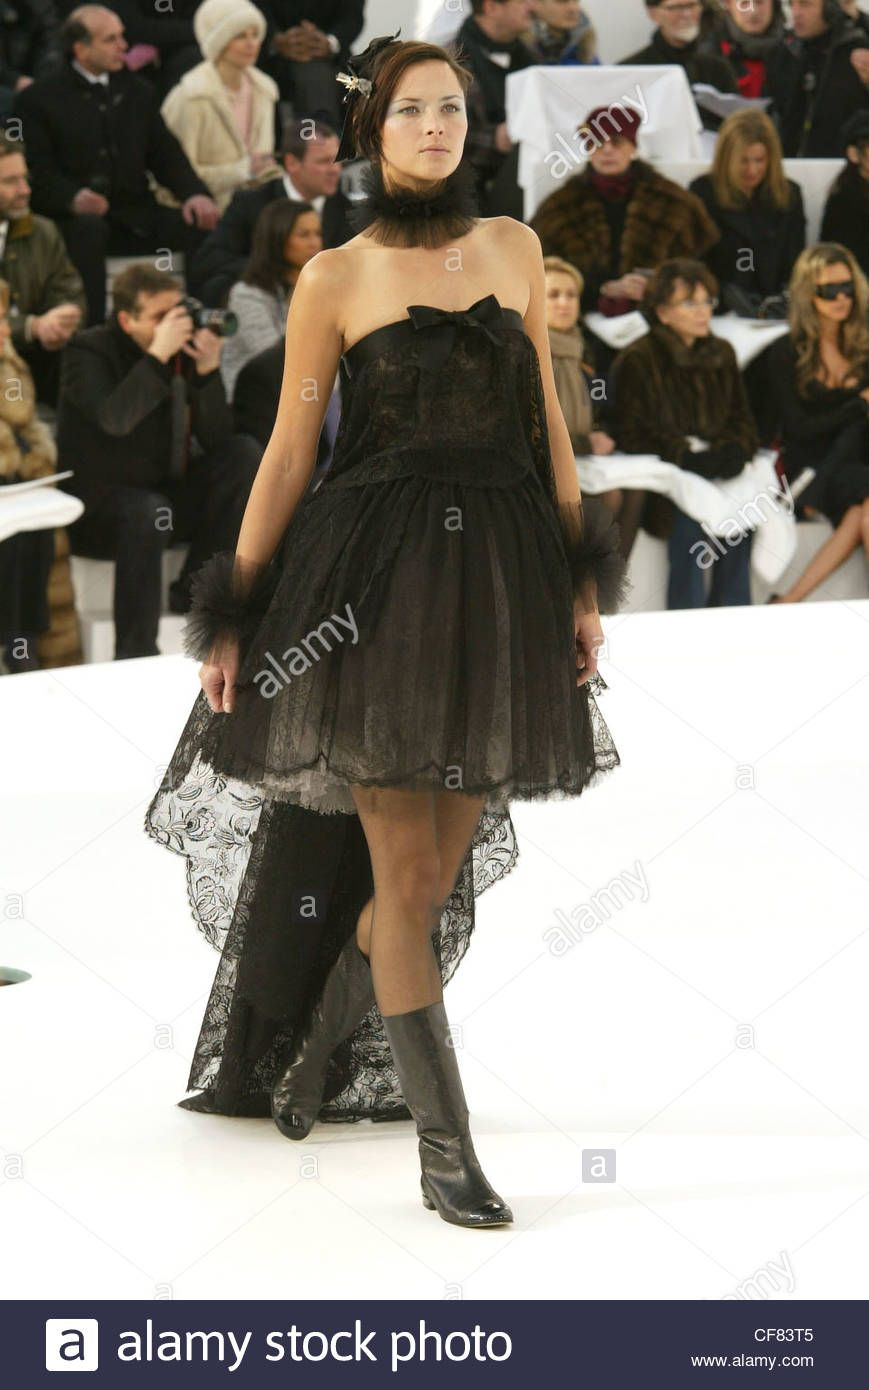 Theme Brunette black lace dress quite